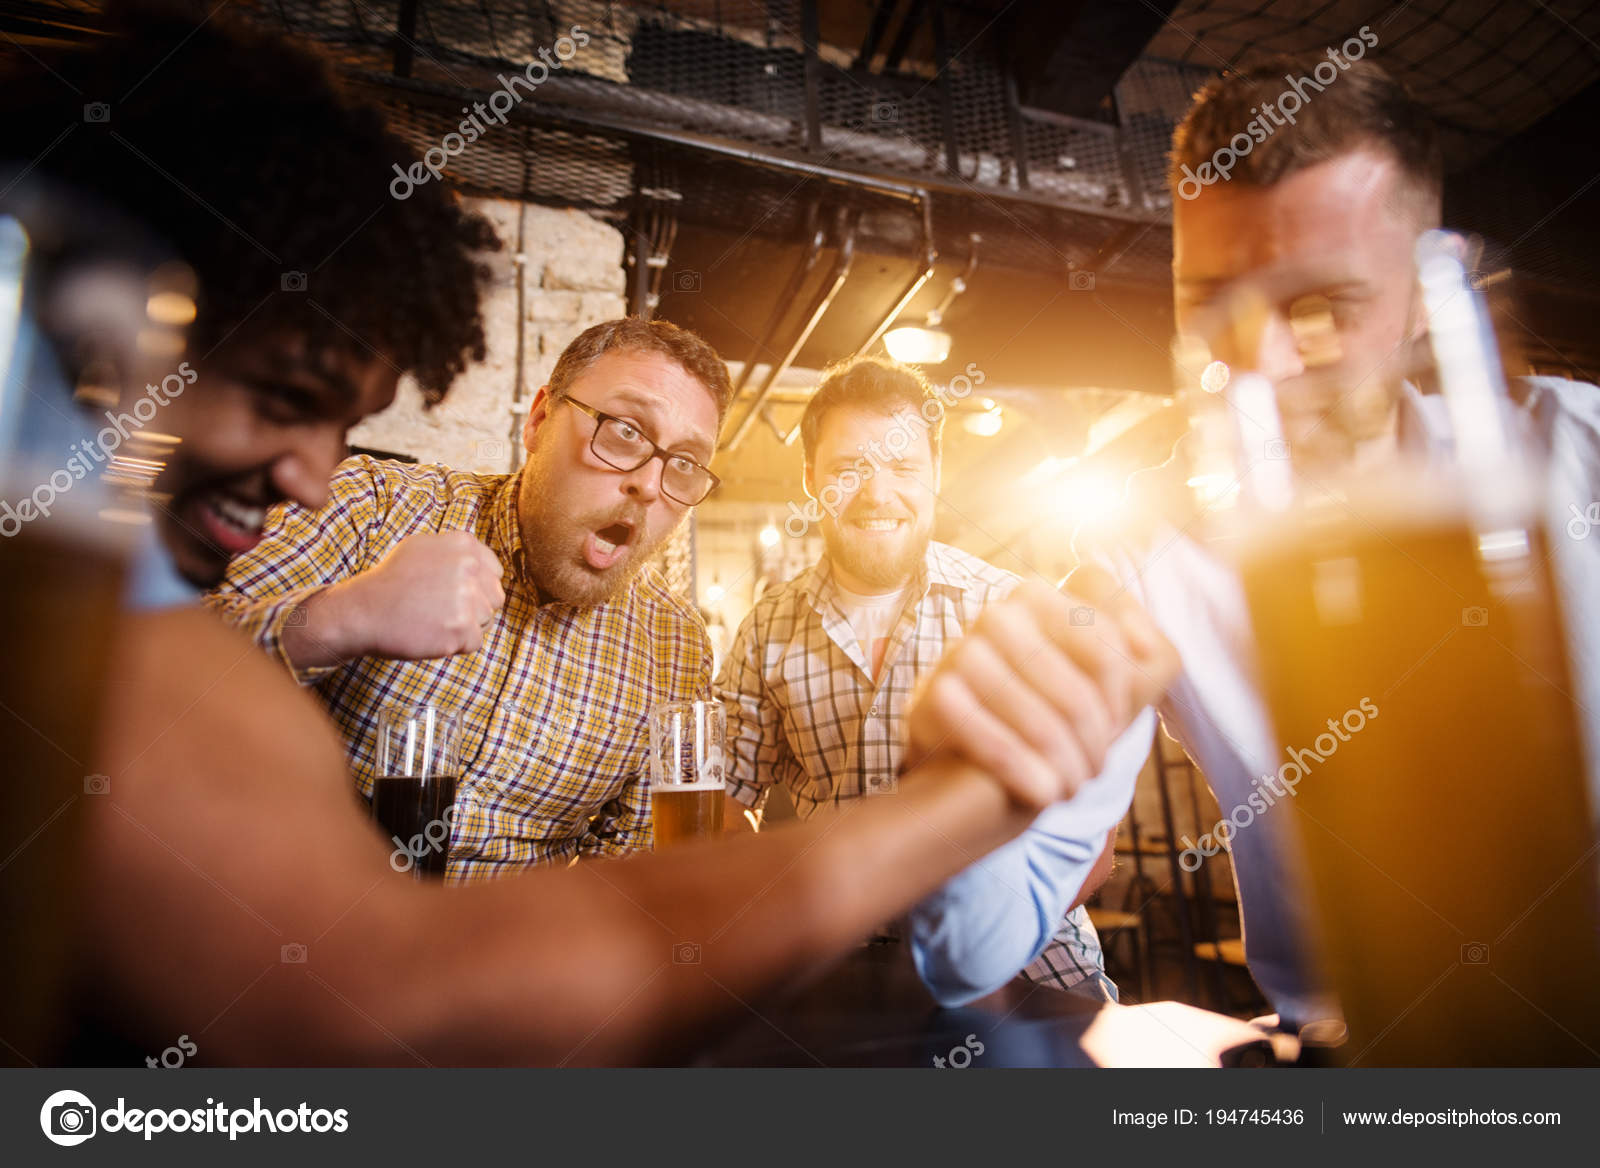 depositphotos_194745436-stock-photo-young-happy-bearded-men-drinking